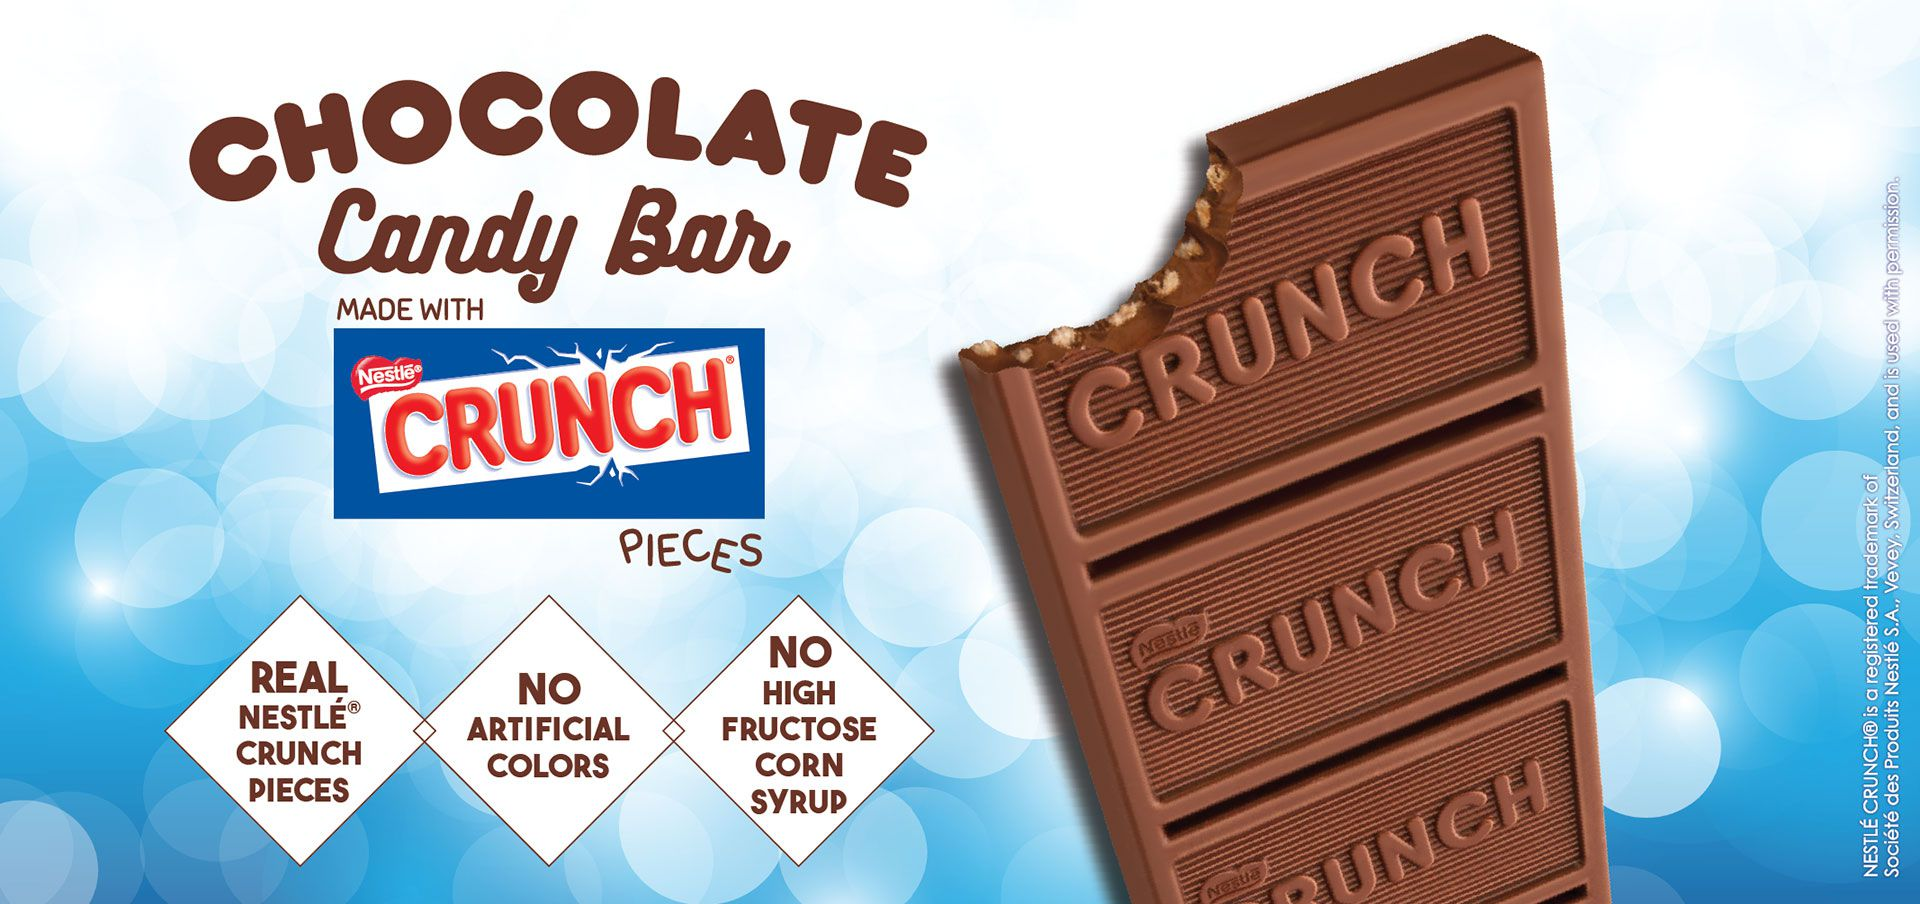 chocolate candy bar made with nestlé® crunch® pieces label image